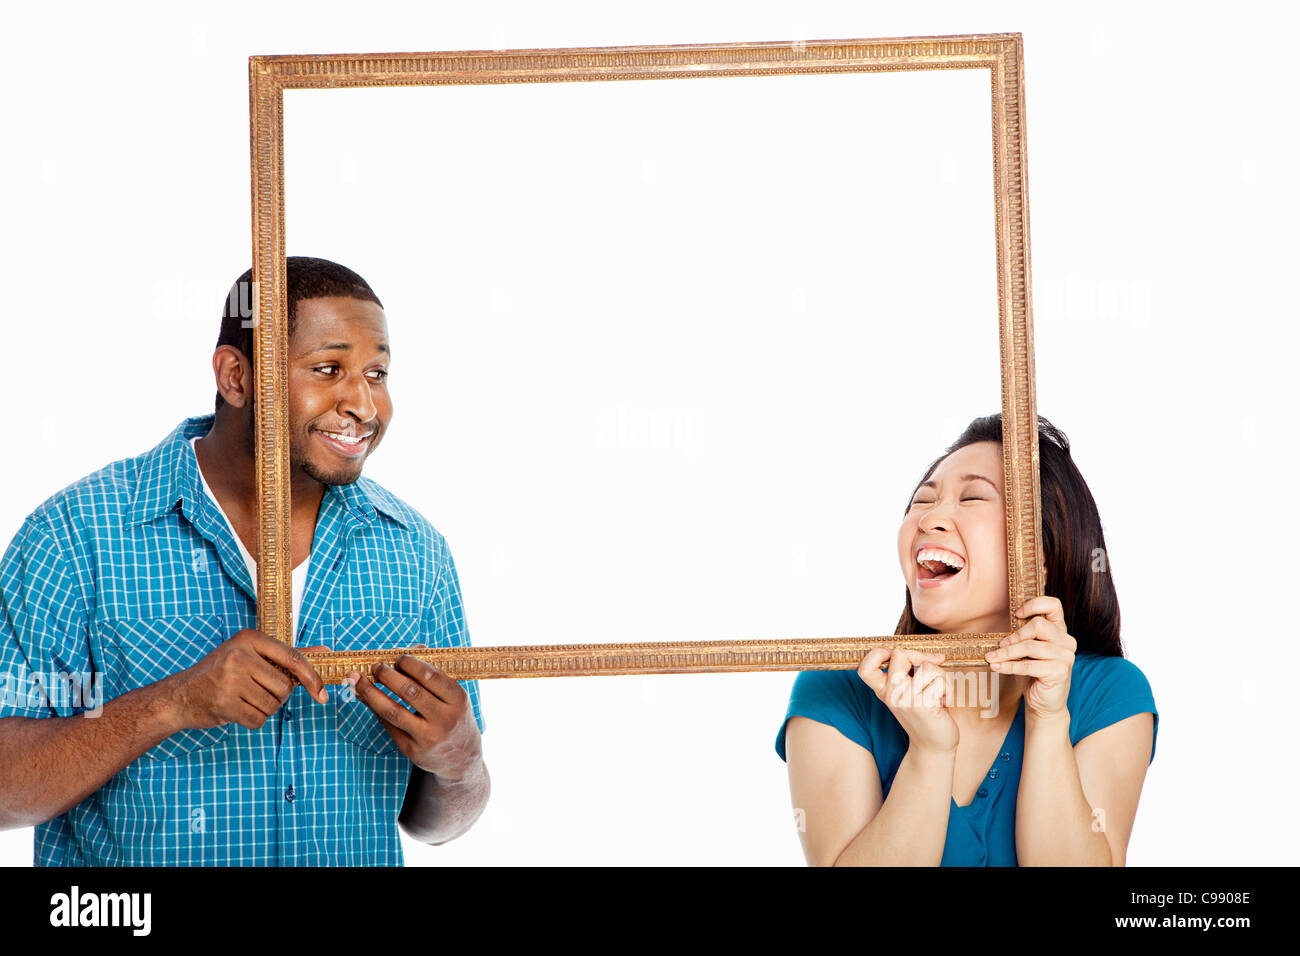 Mixed race couple holding picture frame against white background Stock Photo